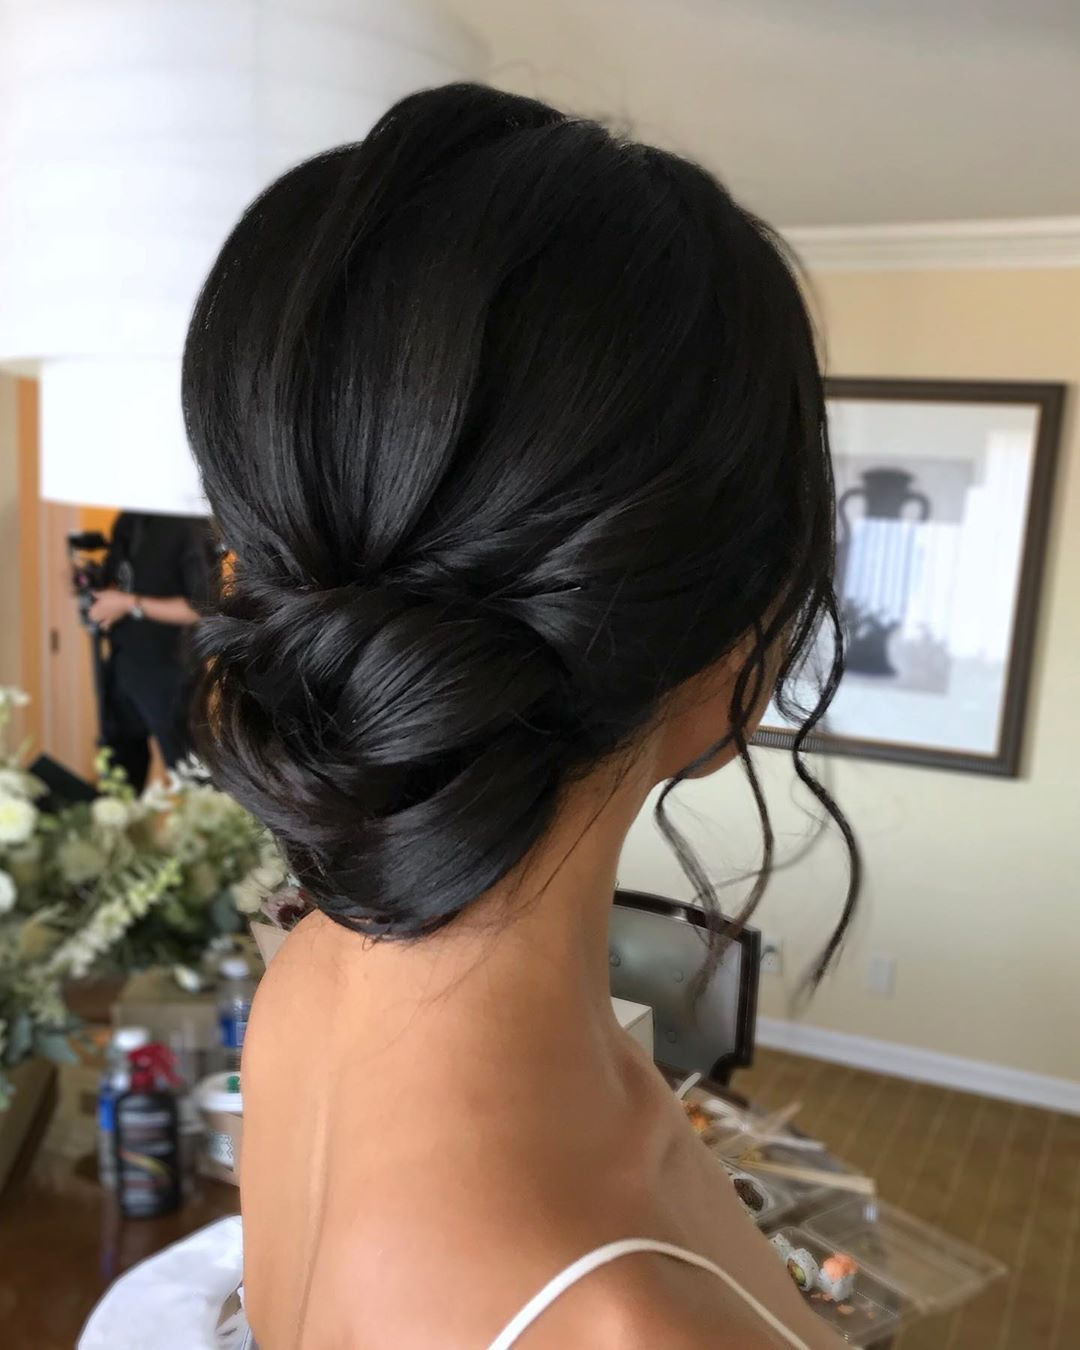 Coa On Instagram Simple And Elegant Updo With Textures It Is Hard To Show Textures On Blac Black Hair Updo Hairstyles Hair Styles Black Wedding Hairstyles